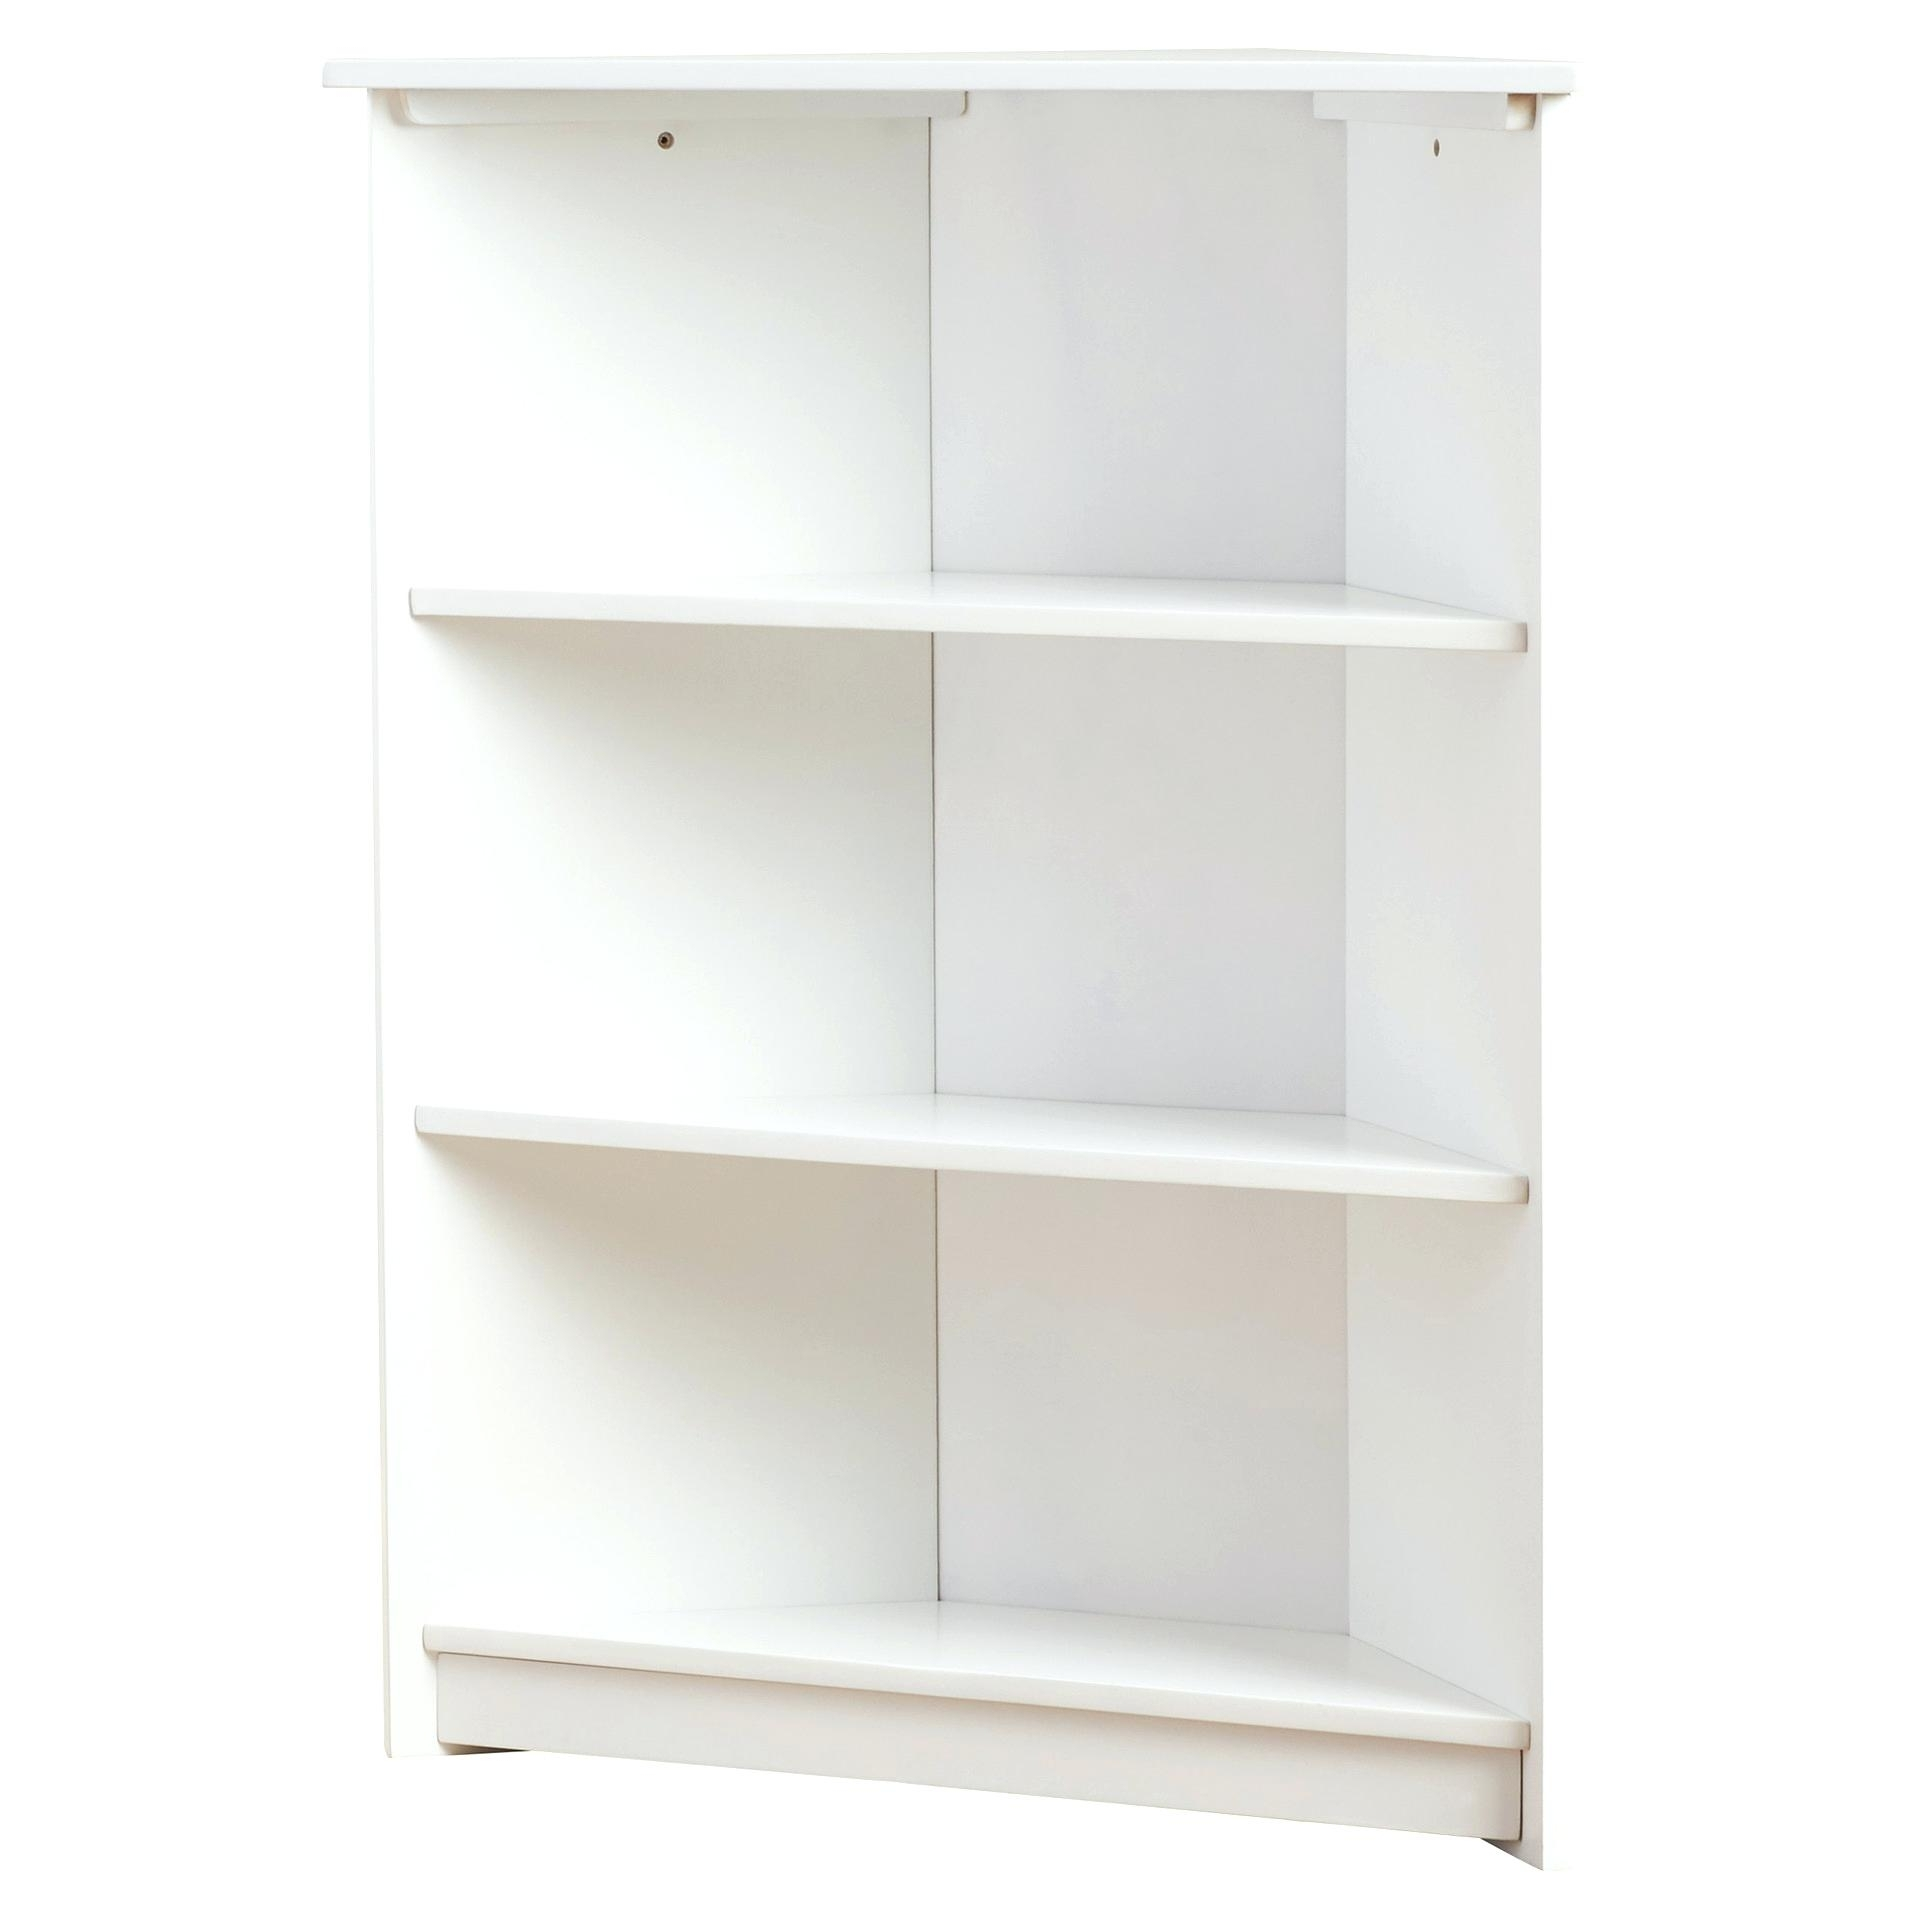 36 Inch Wide Bookcase 36 Wide Bookcase With Doors 36 Inch Wide For Most Up To Date 36 Inch Wide Bookcases (View 2 of 15)